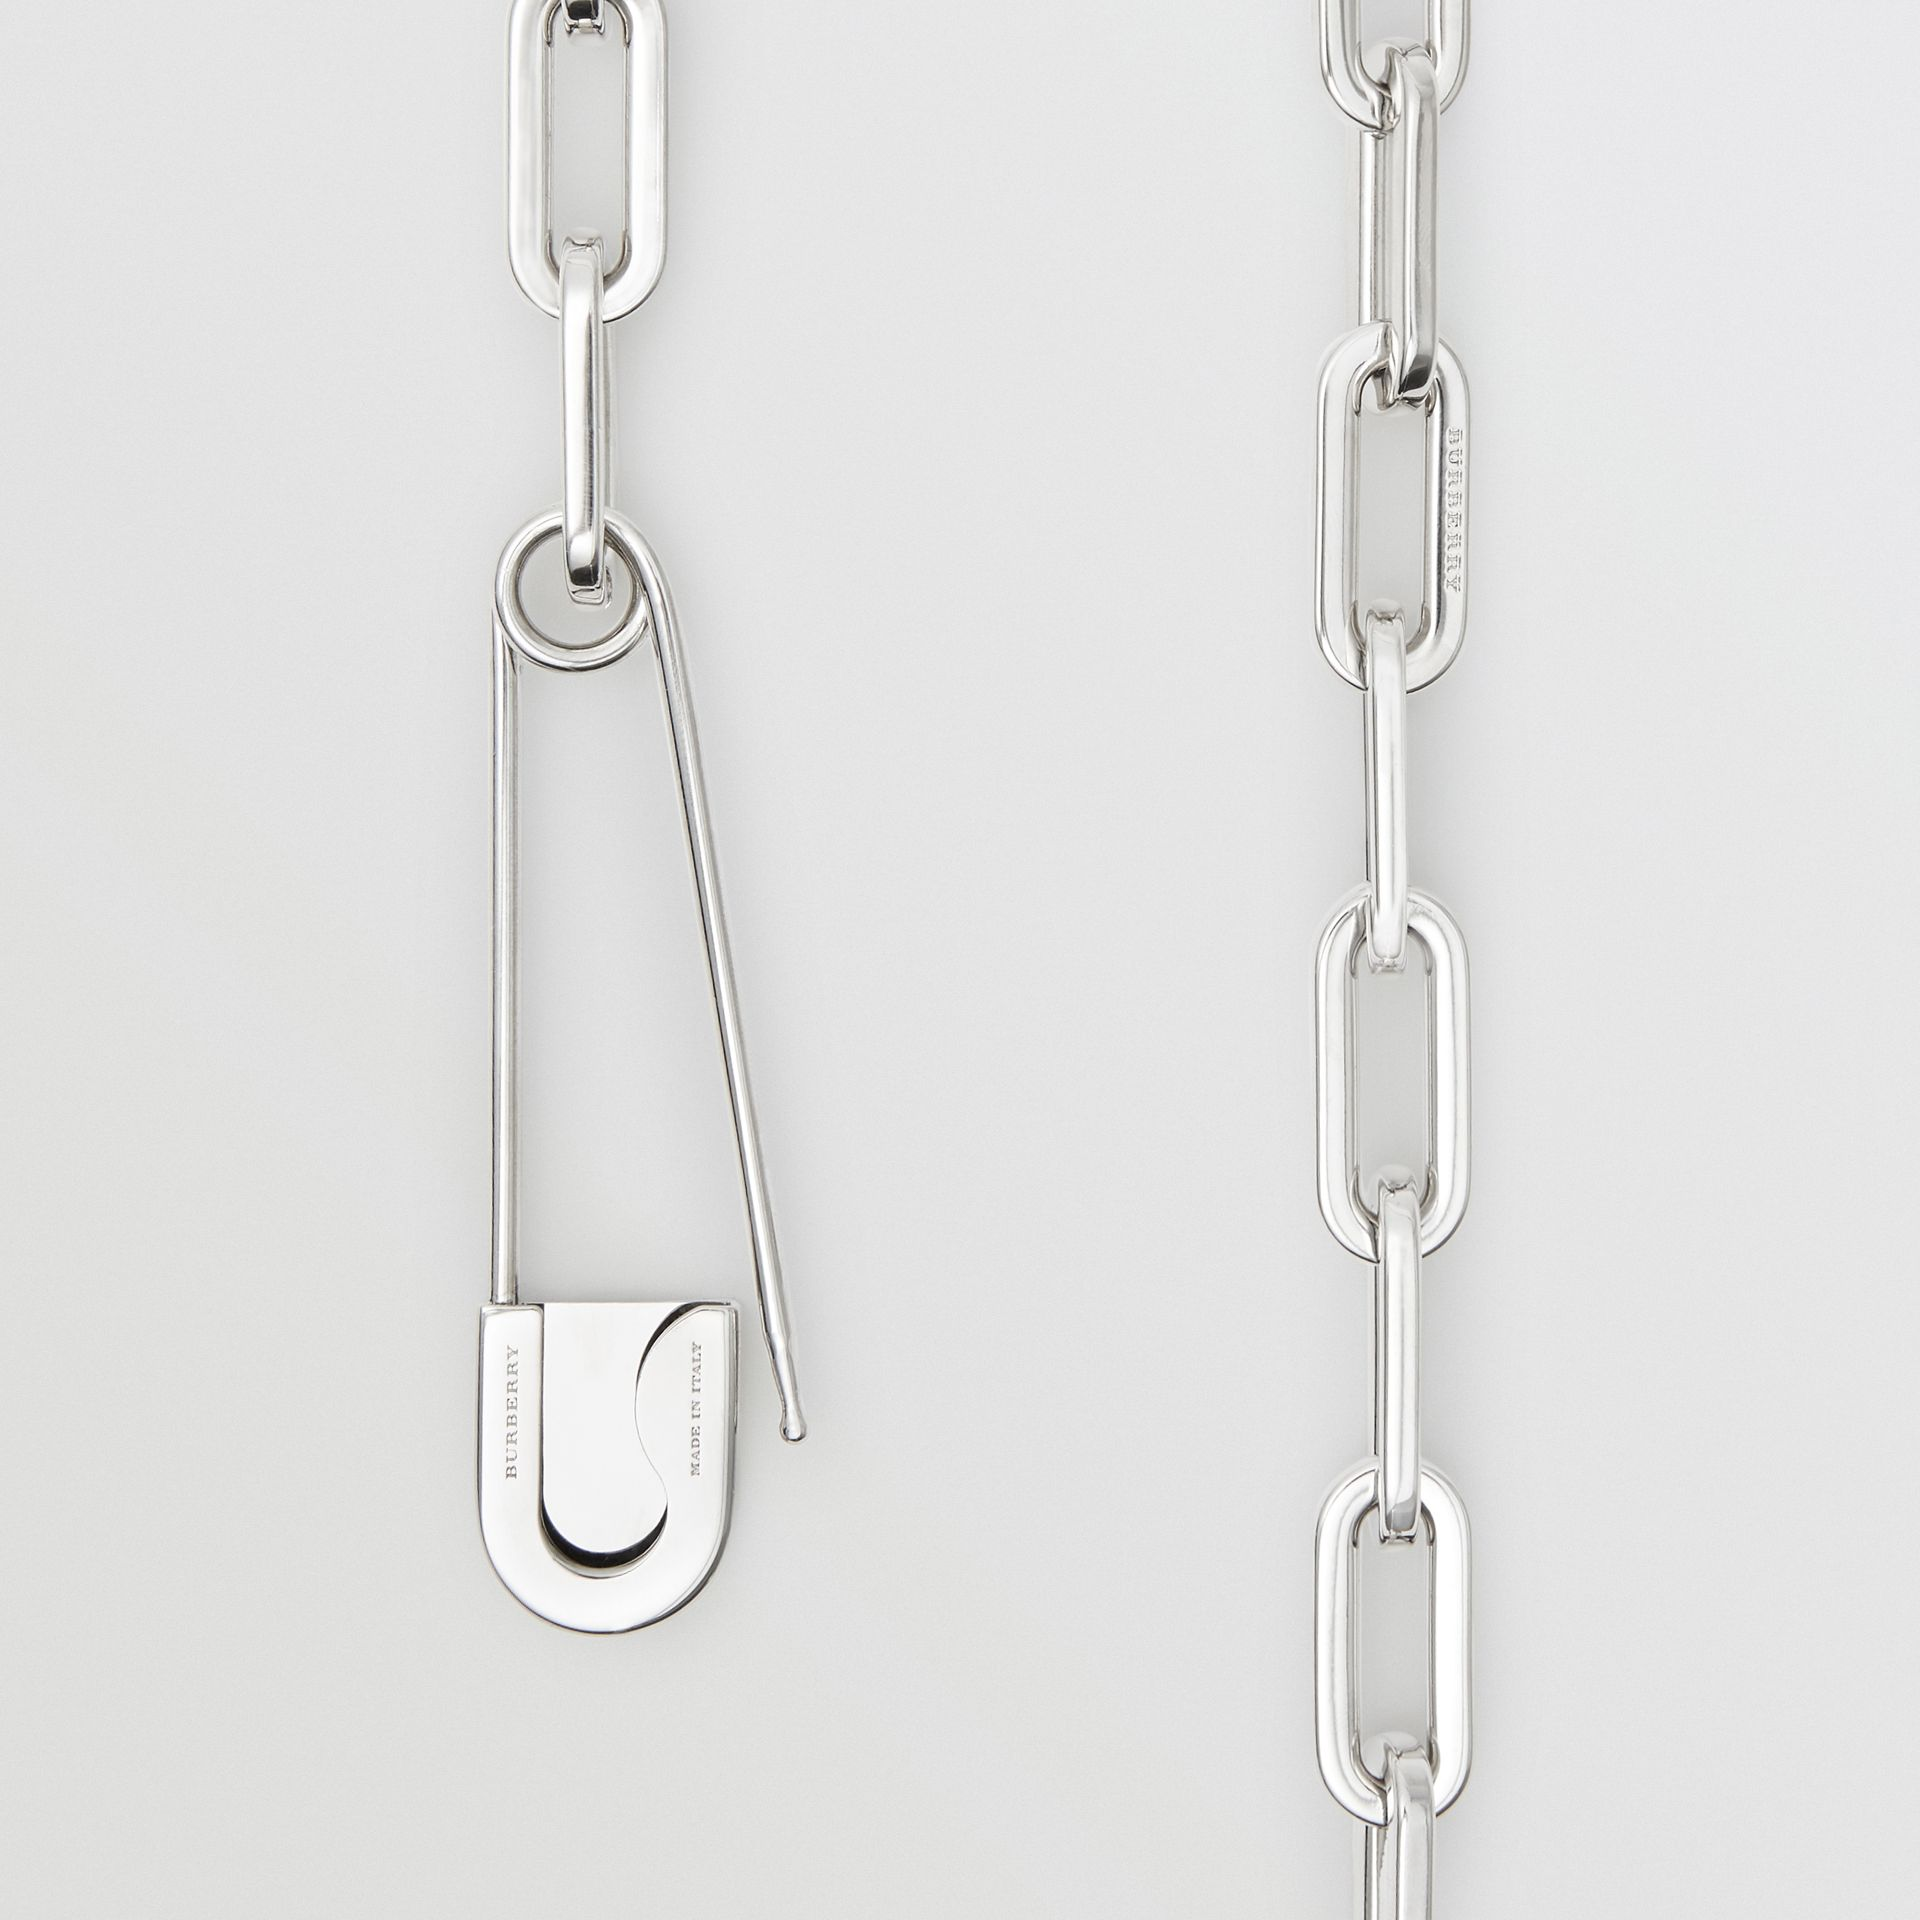 Kilt Pin Palladium-plated Long Link Drop Necklace in Palladio - Women | Burberry Australia - gallery image 1